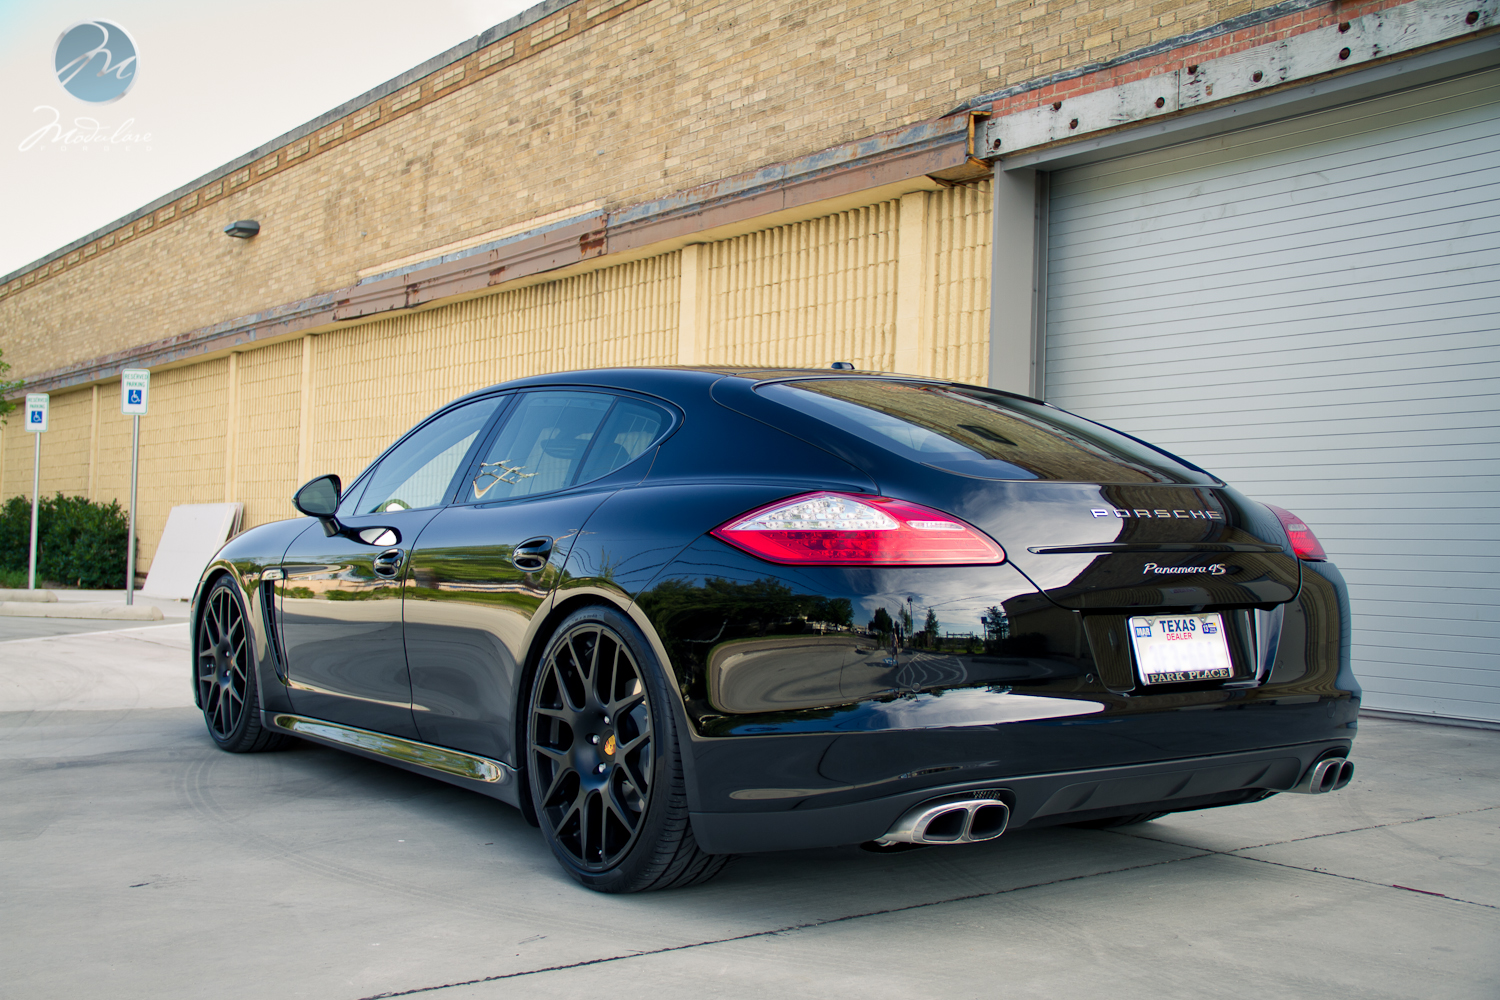 Modulare Wheels 2012 Porsche Panamera 4s 22 Modulare B1 Satin Black 6speedonline Porsche Forum And Luxury Car Resource